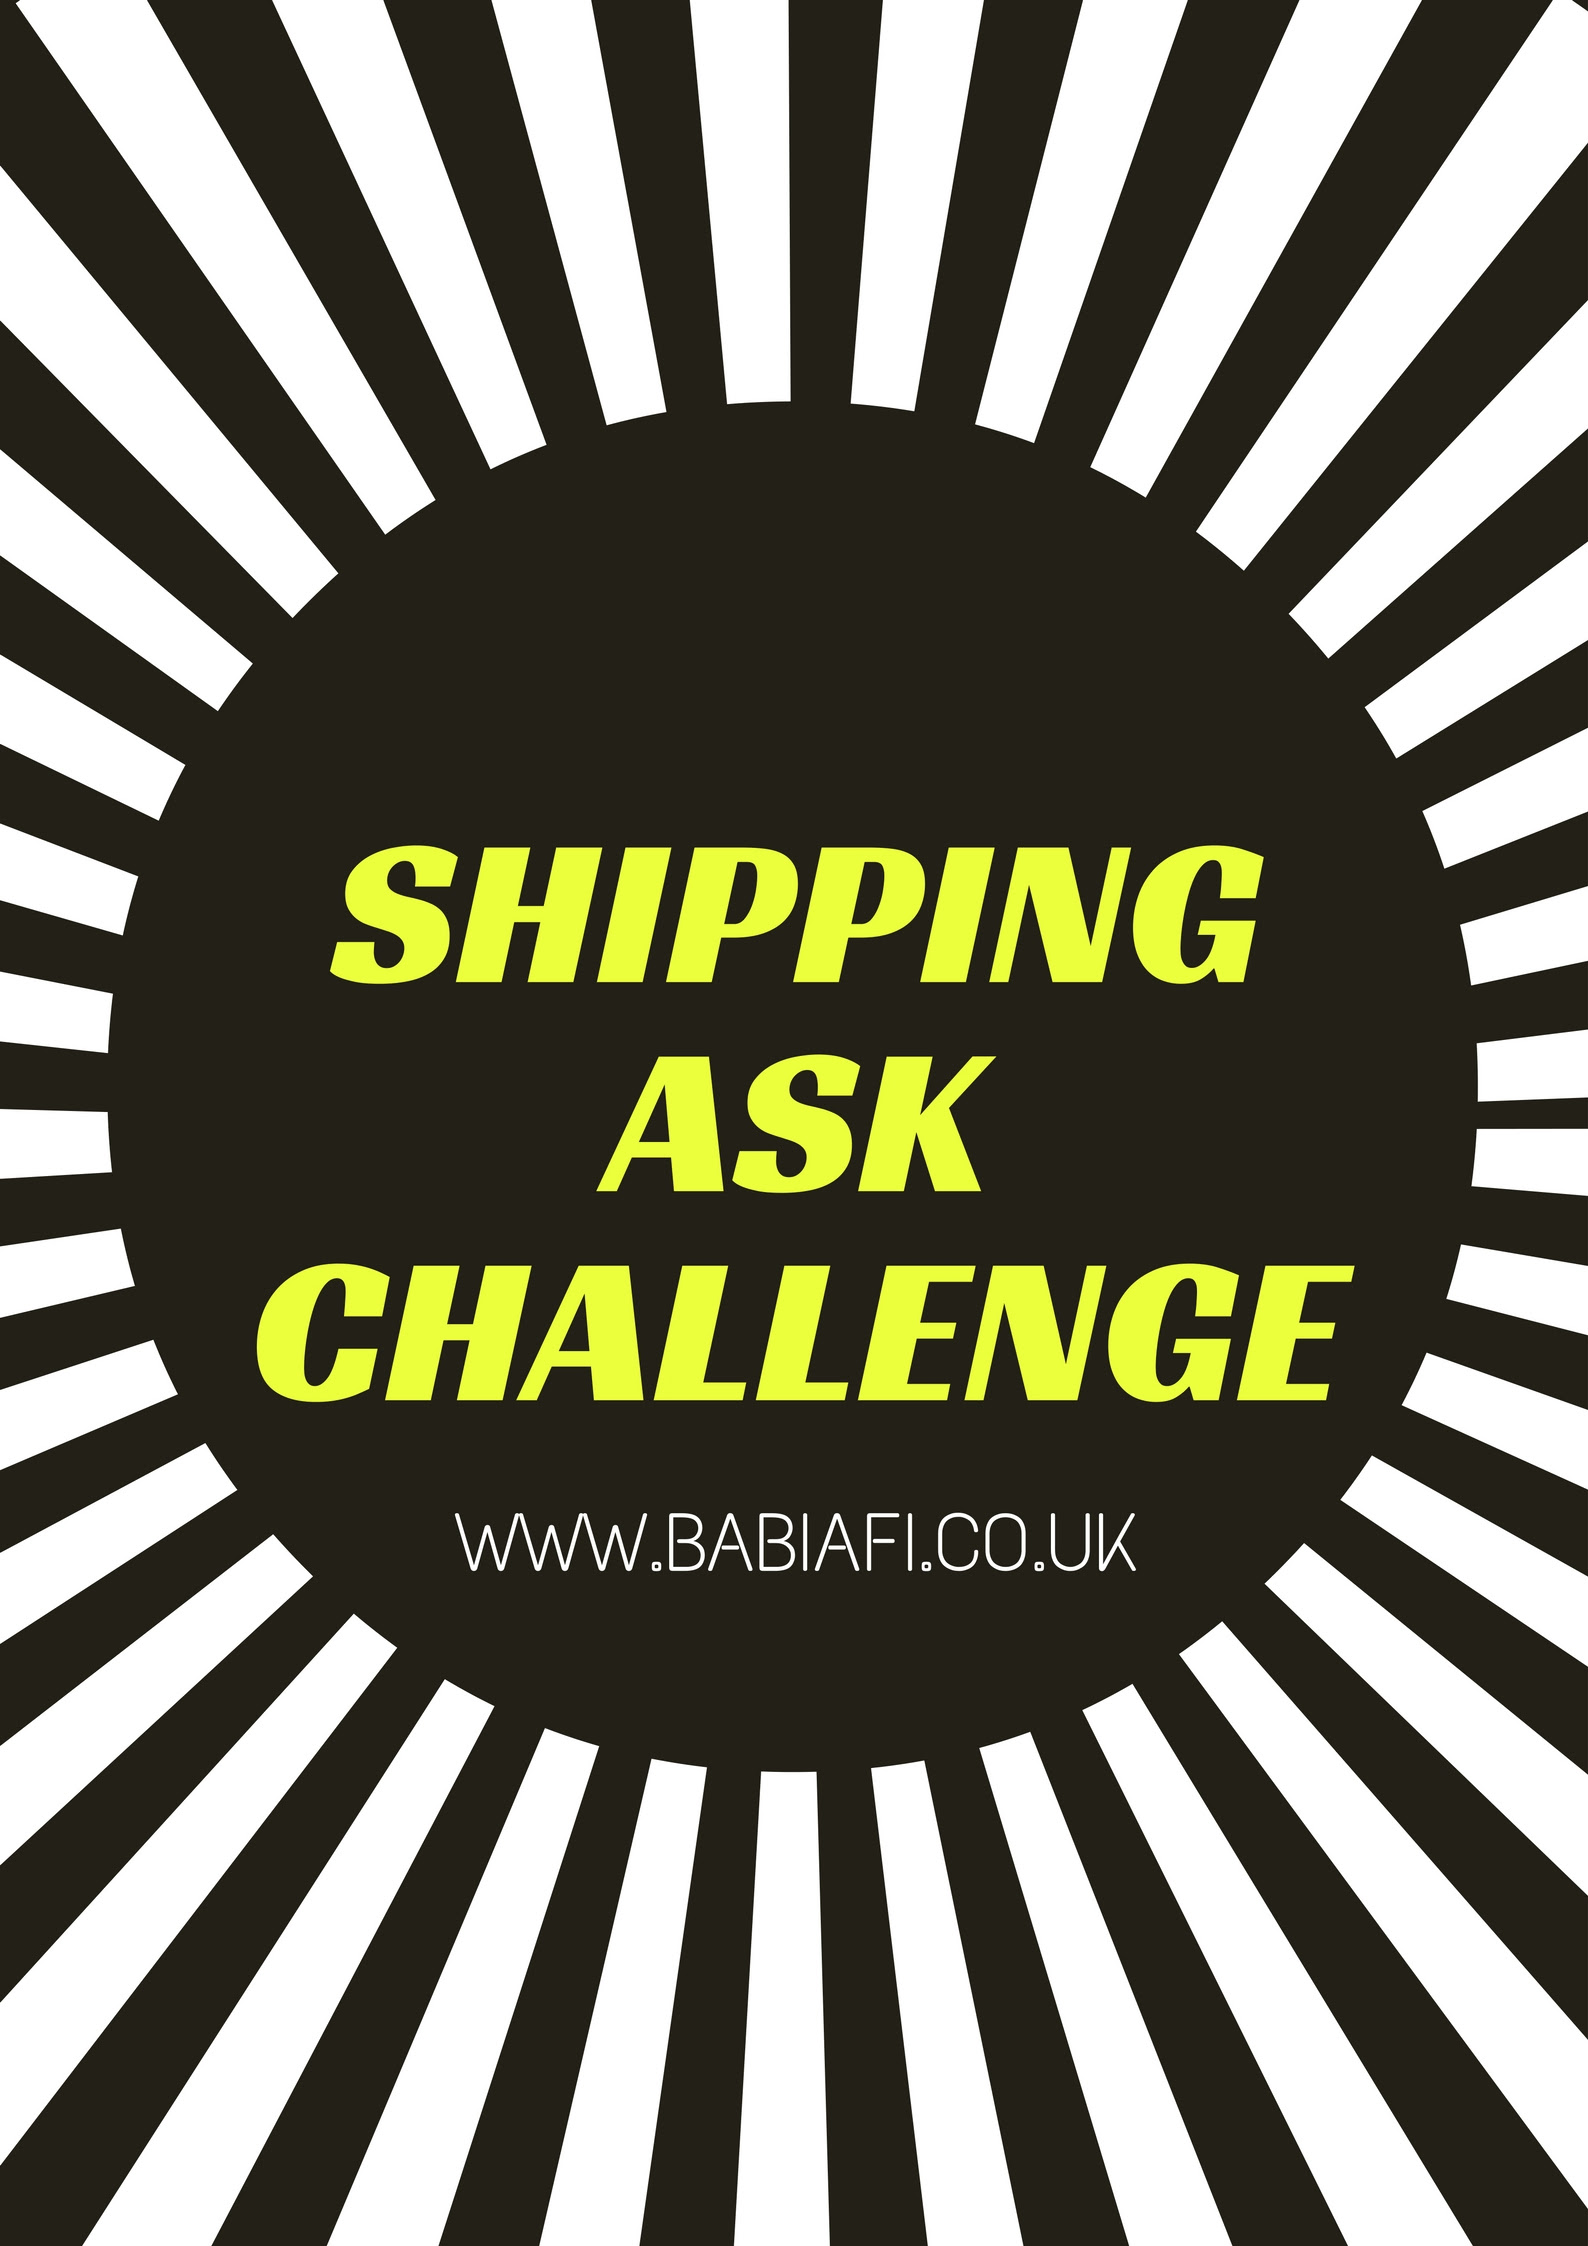 Shipping Ask Challenge